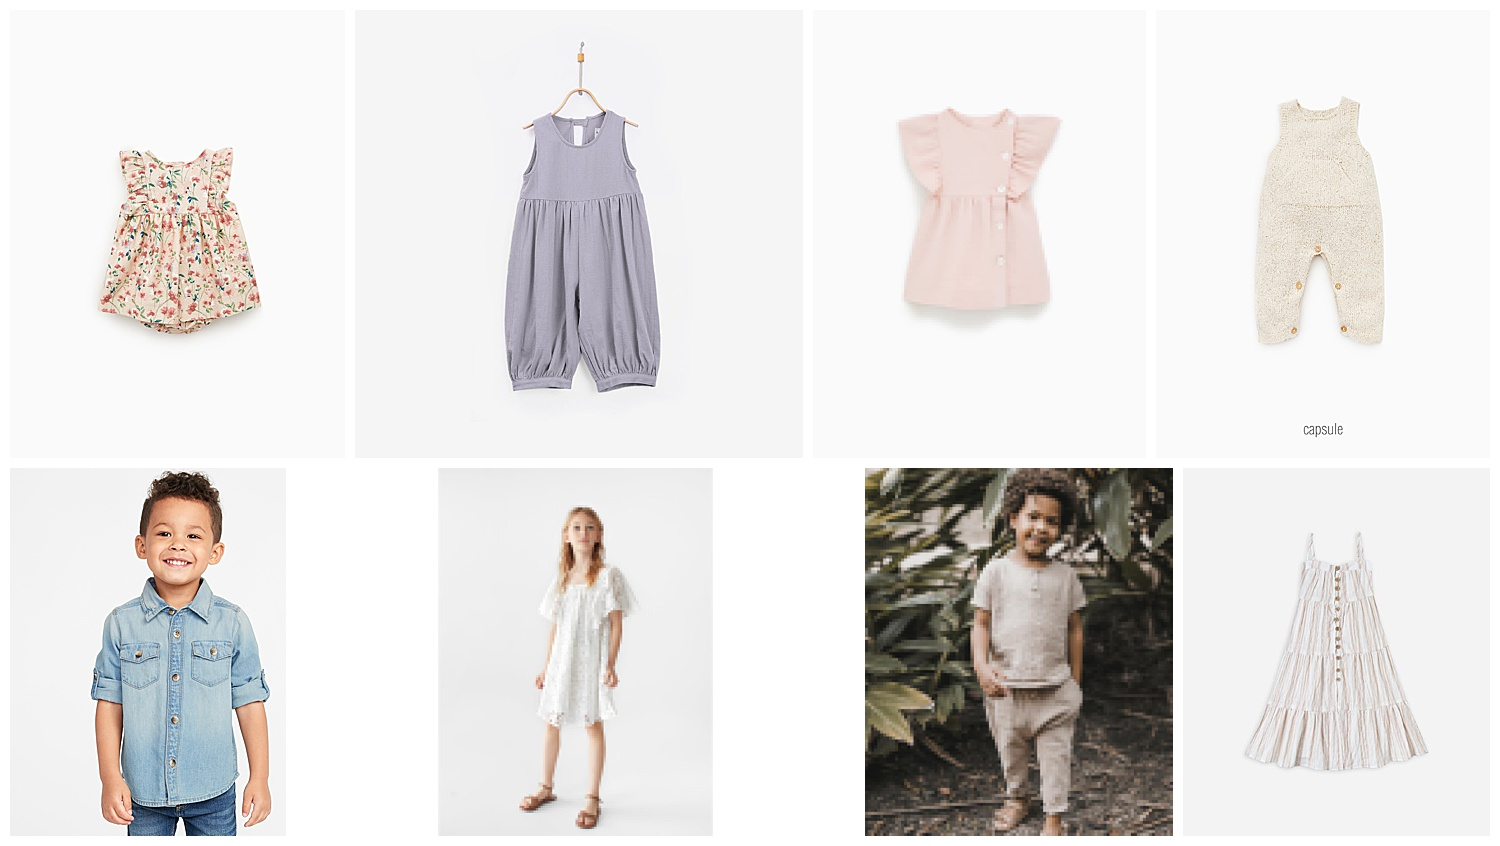 Beginning from top left: (1)  Floral Dress  (2)  Jola Overall  (3)  Ruffled Dress  (4)  Rustic Jumpsuit with Pocket  (5)  Roll-Sleeve Denim Shirt  (6)  Lace Dress  (7)  Woven Henley Tee & Hawthorne Trouser  (8)  Tiered Maxi Dress